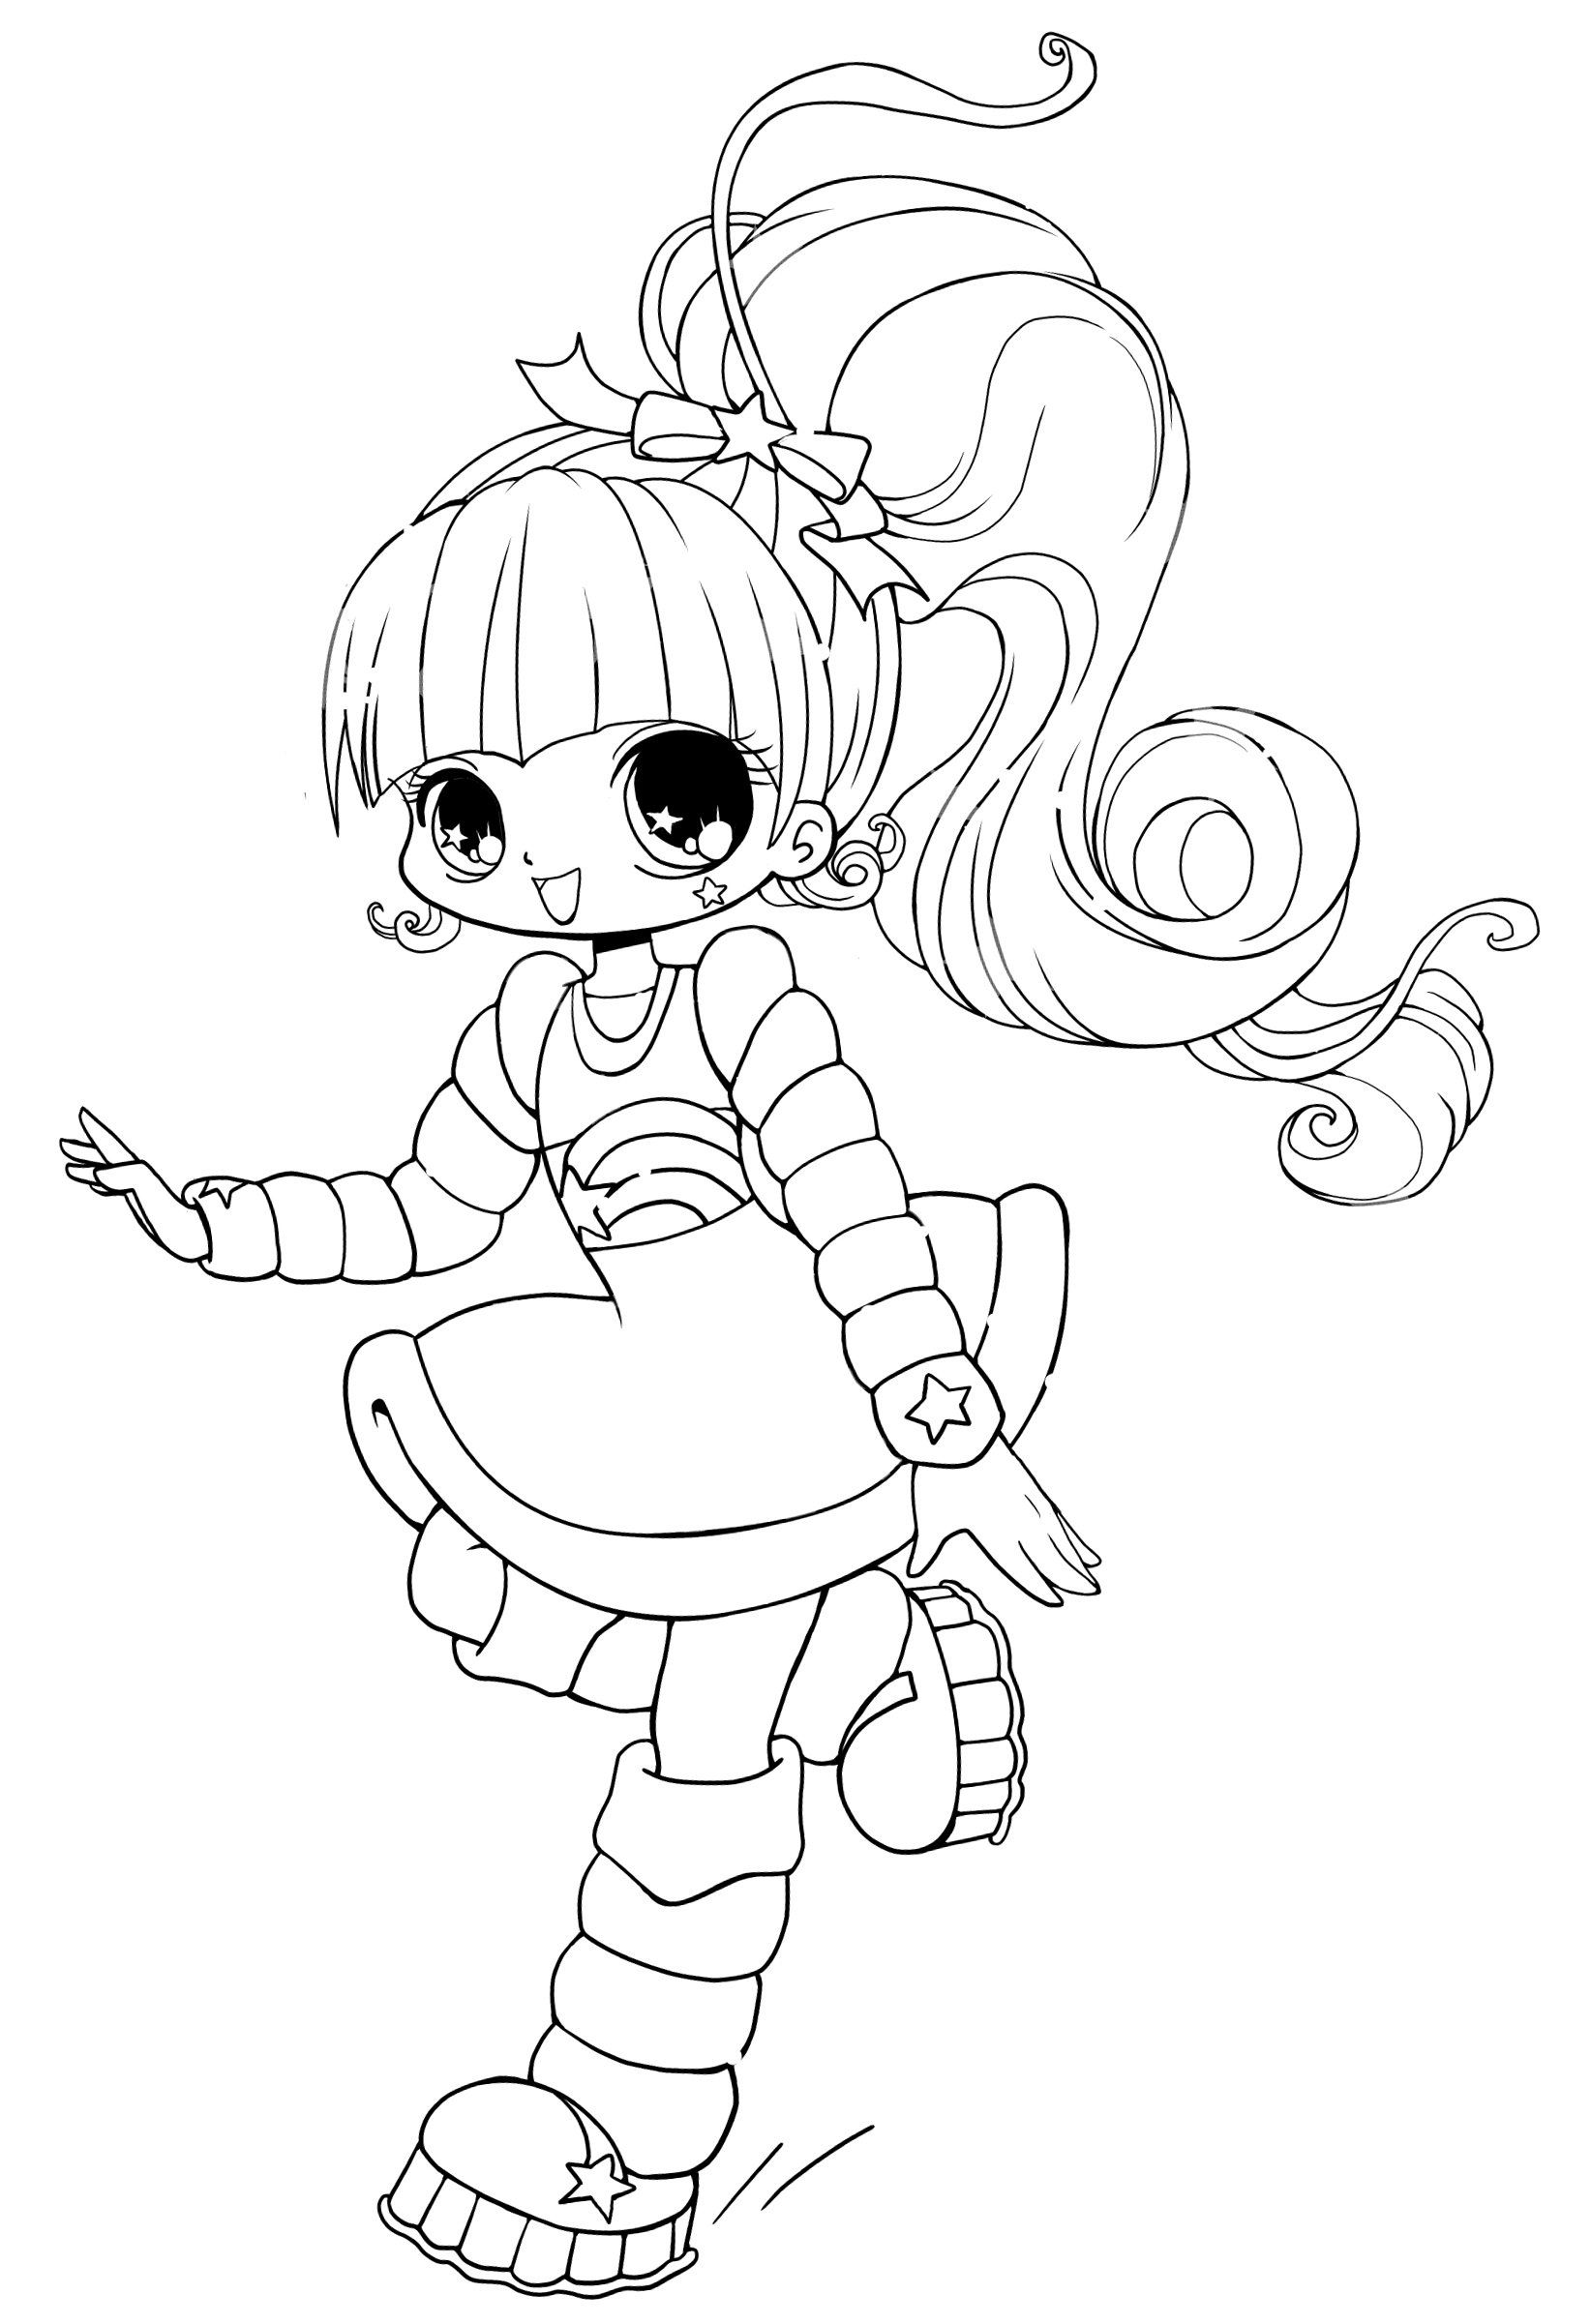 1644x2402 Free Printable Chibi Coloring Pages For Kids At Cute Anime